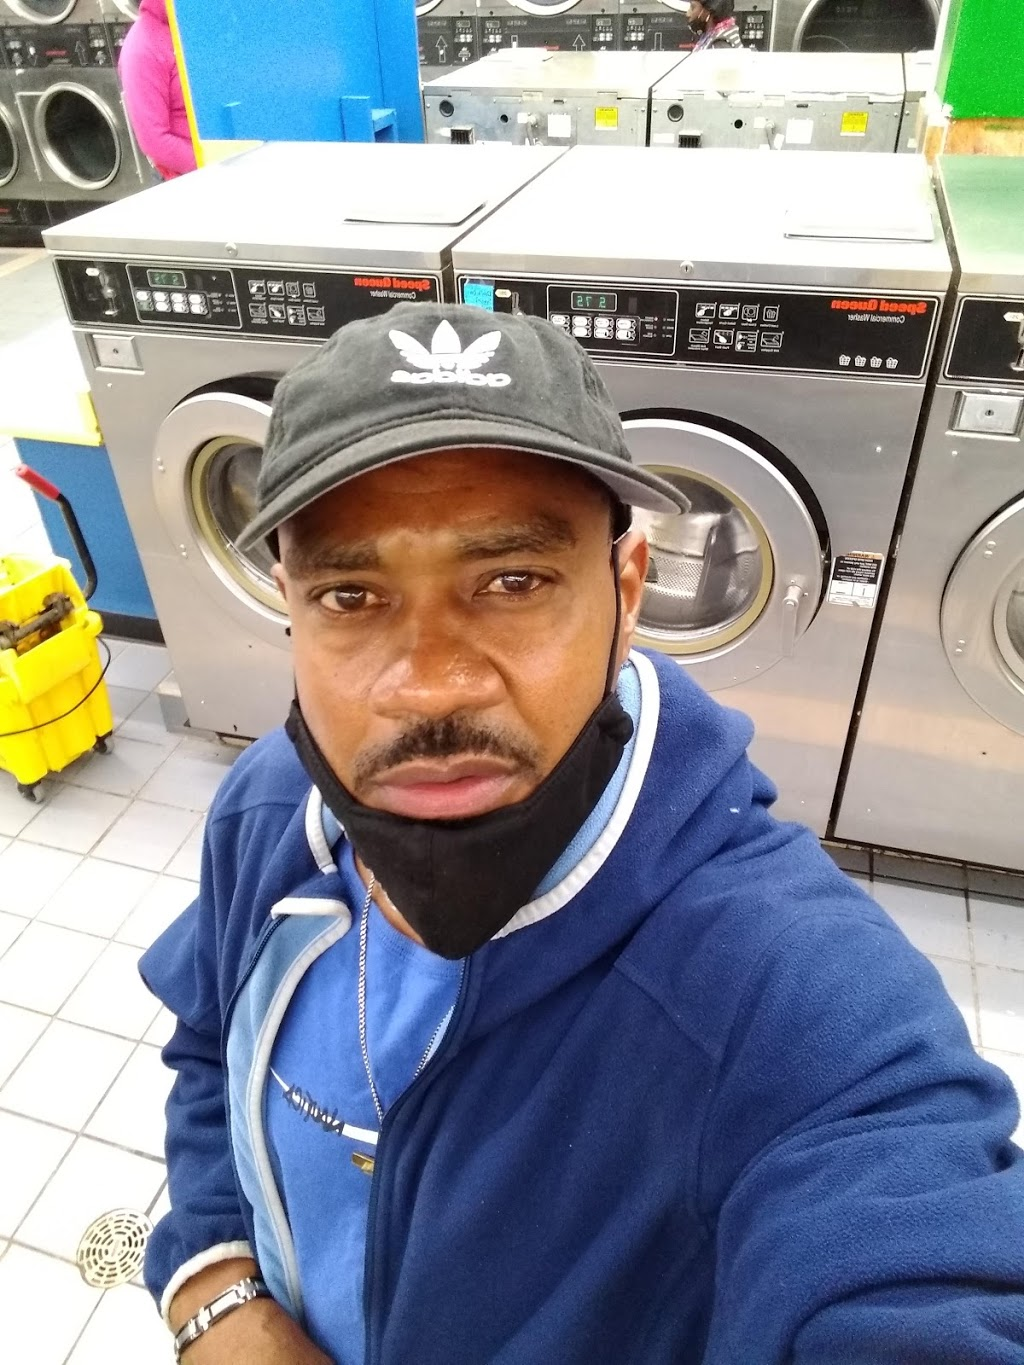 All In Madison Inc - laundry  | Photo 1 of 3 | Address: 4258 W Madison St, Chicago, IL 60624, USA | Phone: (773) 533-1750